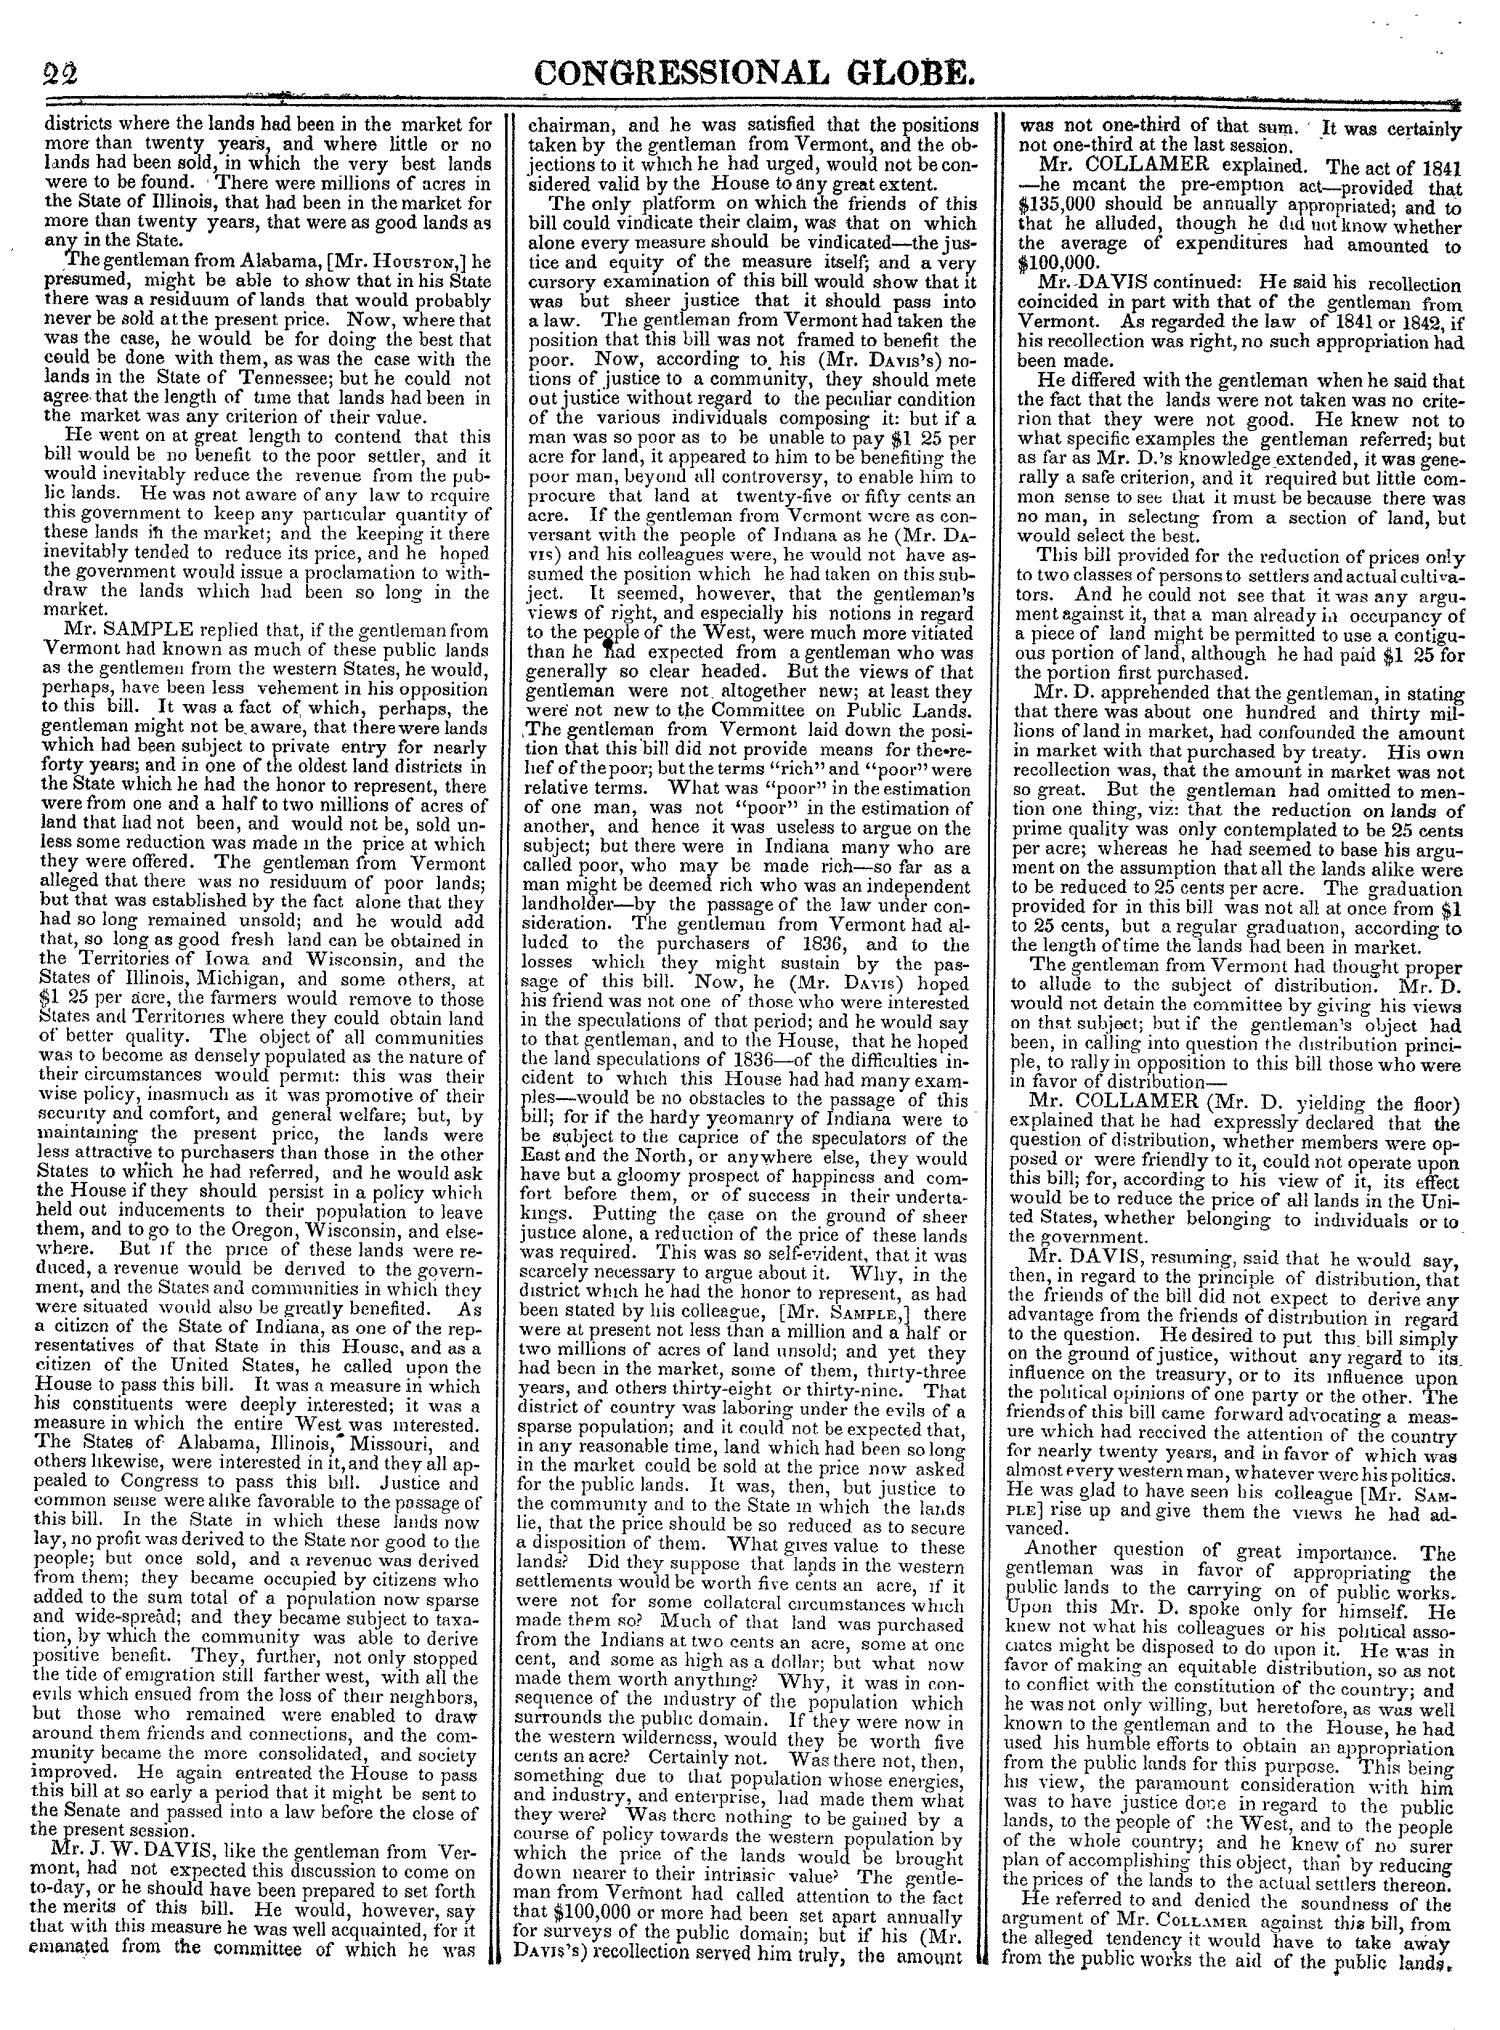 The Congressional Globe, Volume 14: Twenty-Eighth Congress, Second Session                                                                                                      22